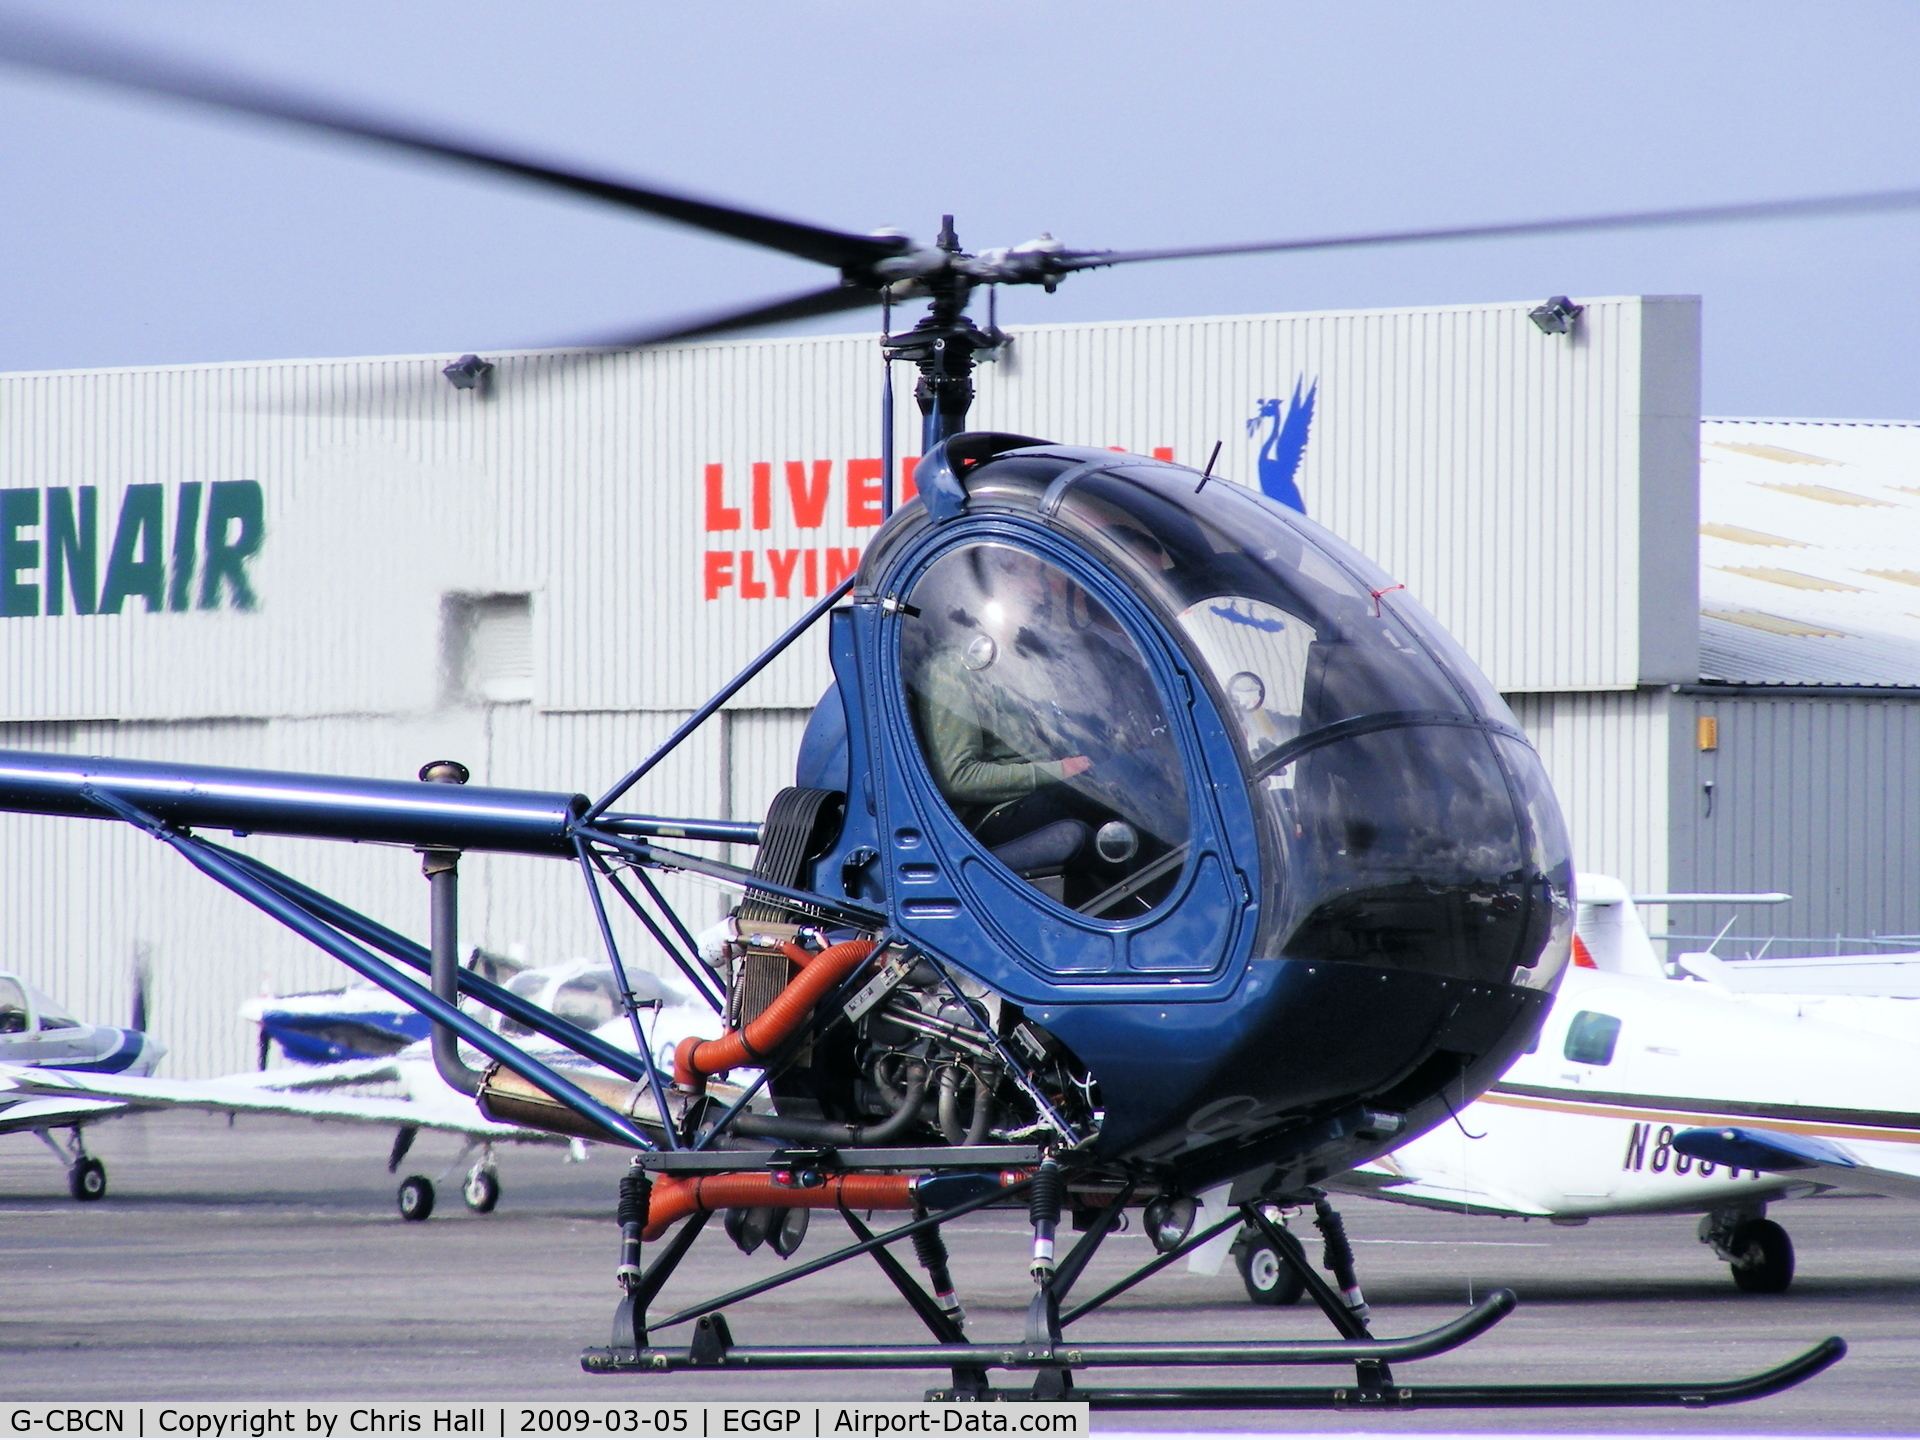 G-CBCN, 2001 Schweizer 269C-1 C/N 0129, HELICENTRE LIVERPOOL LTD, Previous ID: EI-CWS